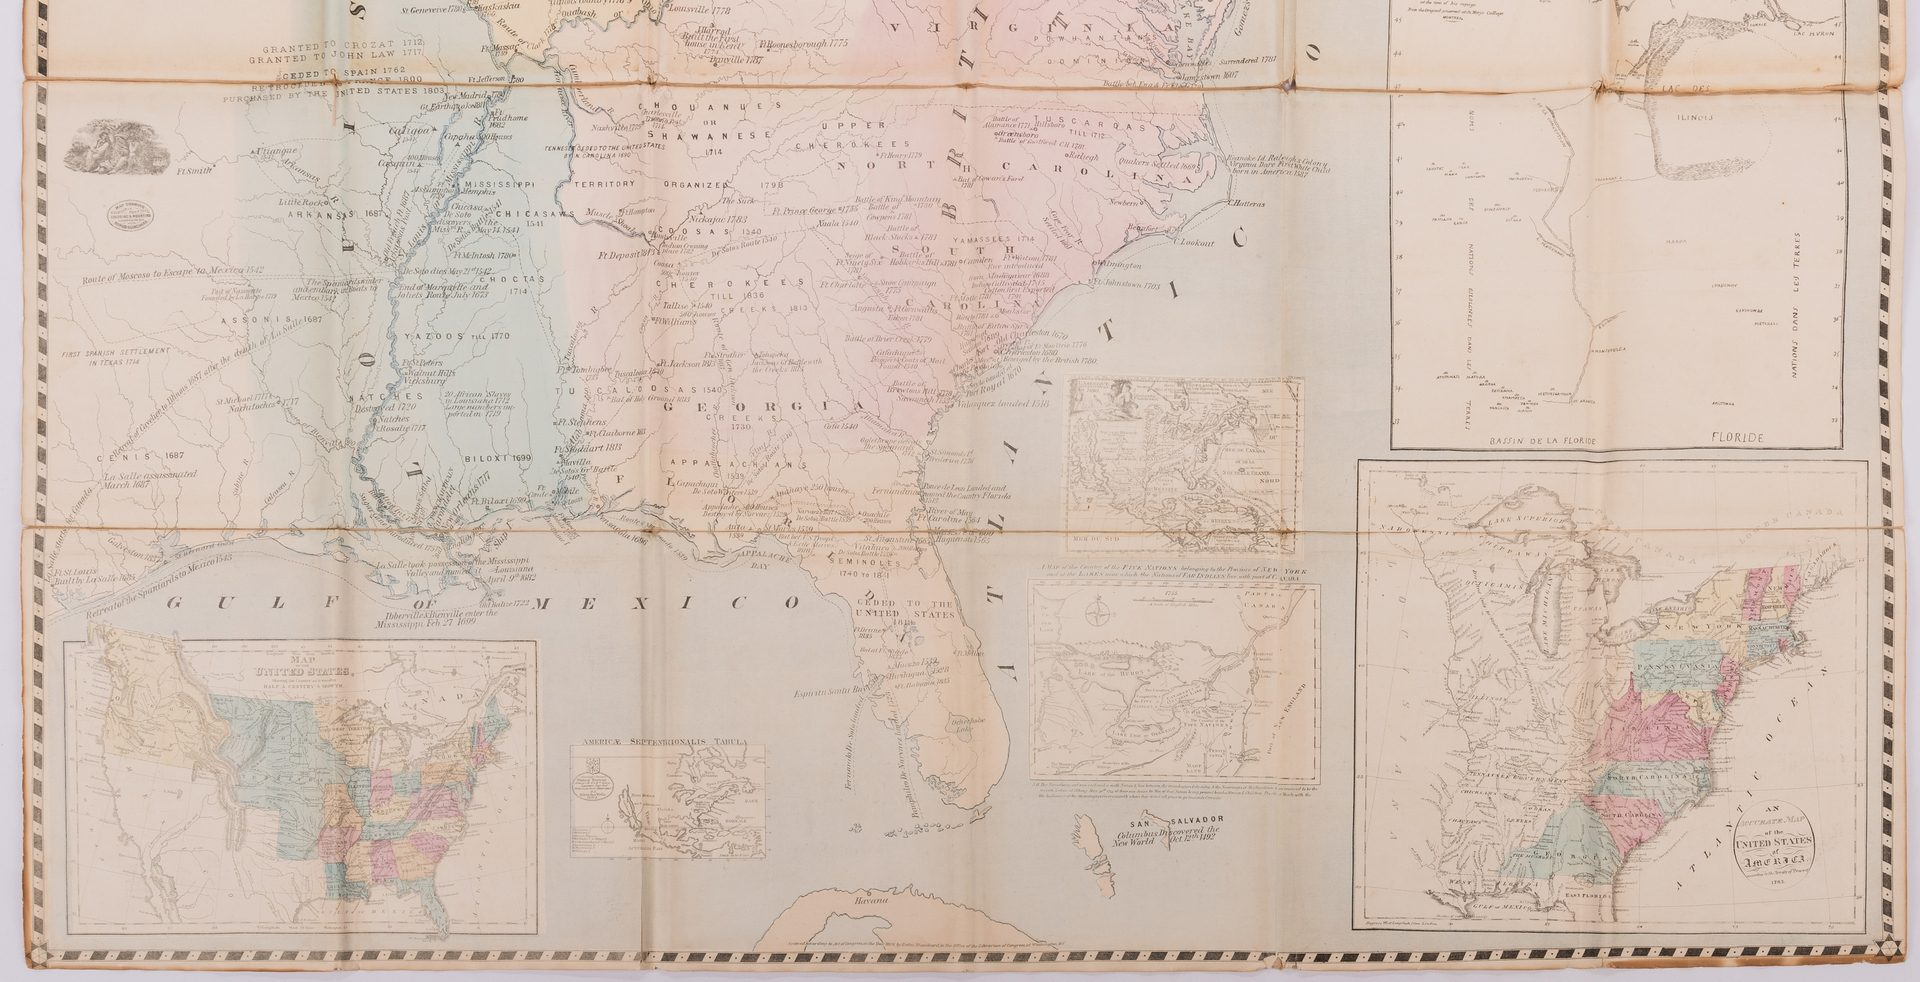 Lot 537: Historical Map Of The United States, R. Blanchard, 1876